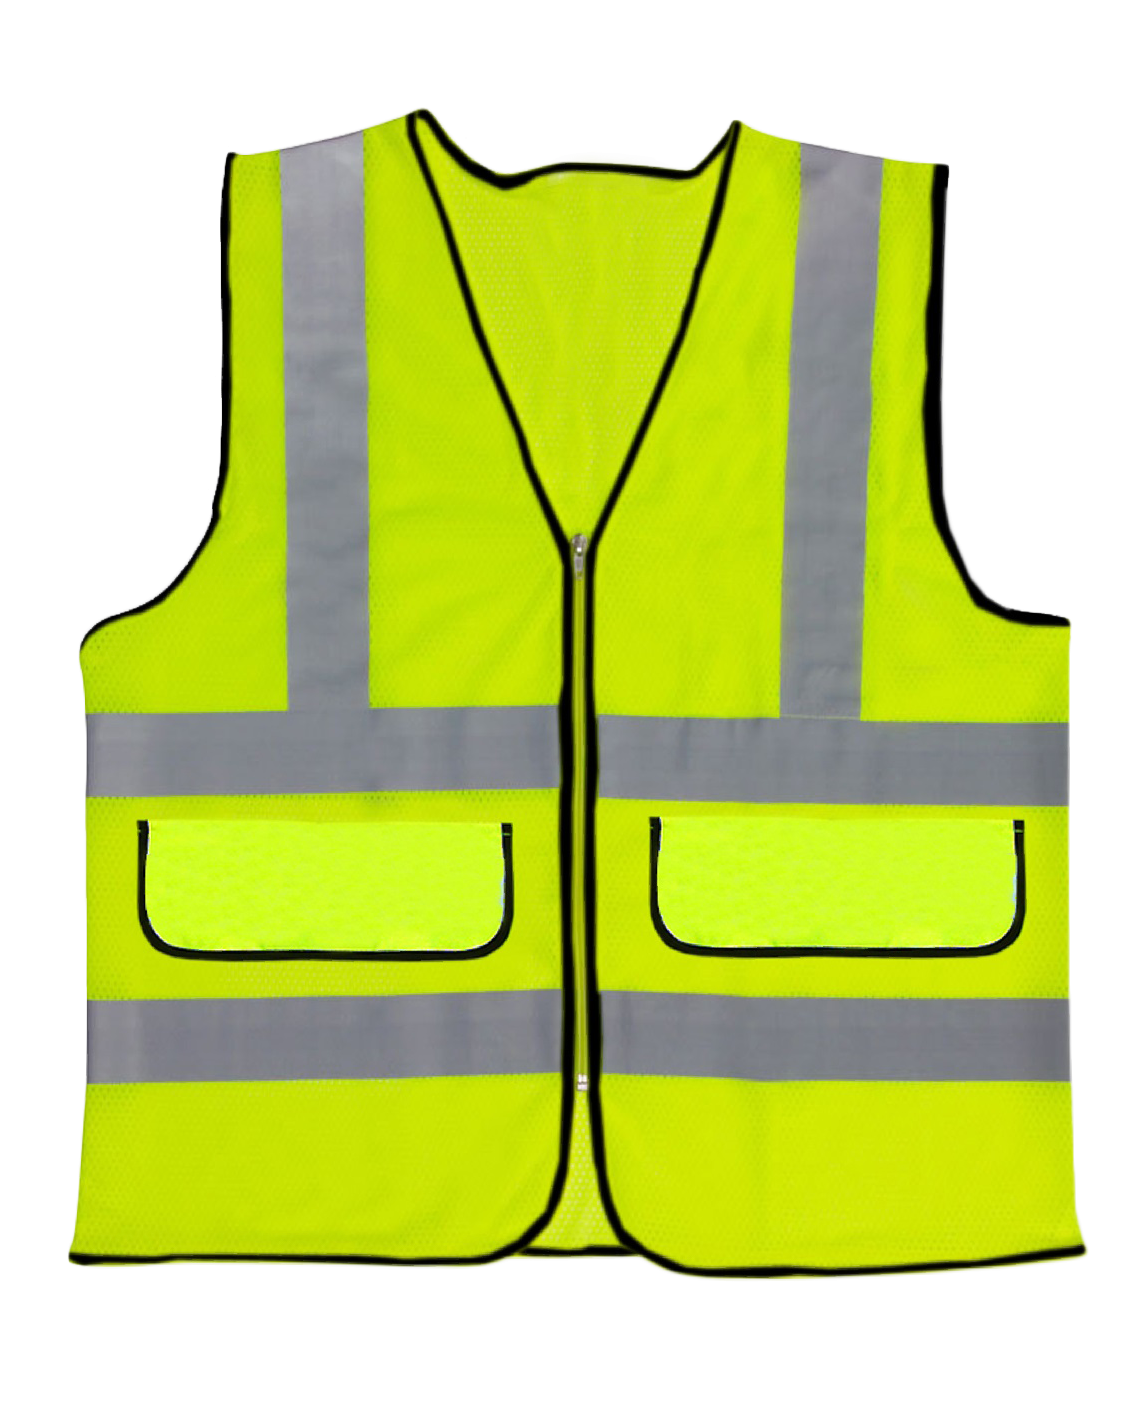 image transparent library Safety rsv rodamo versatile. Vest clipart